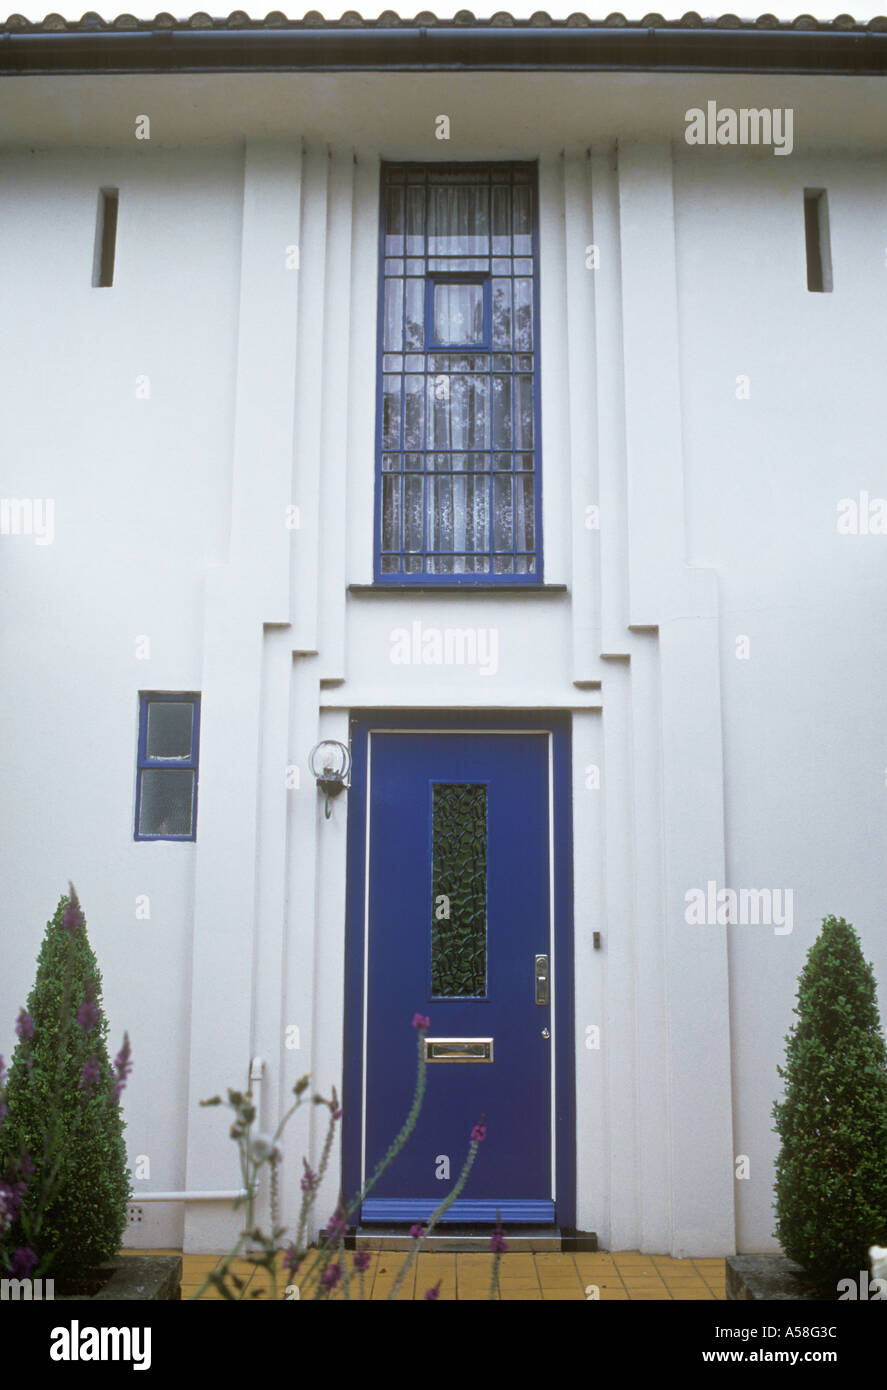 gidea park essex england art deco style moderne 1934 front door and